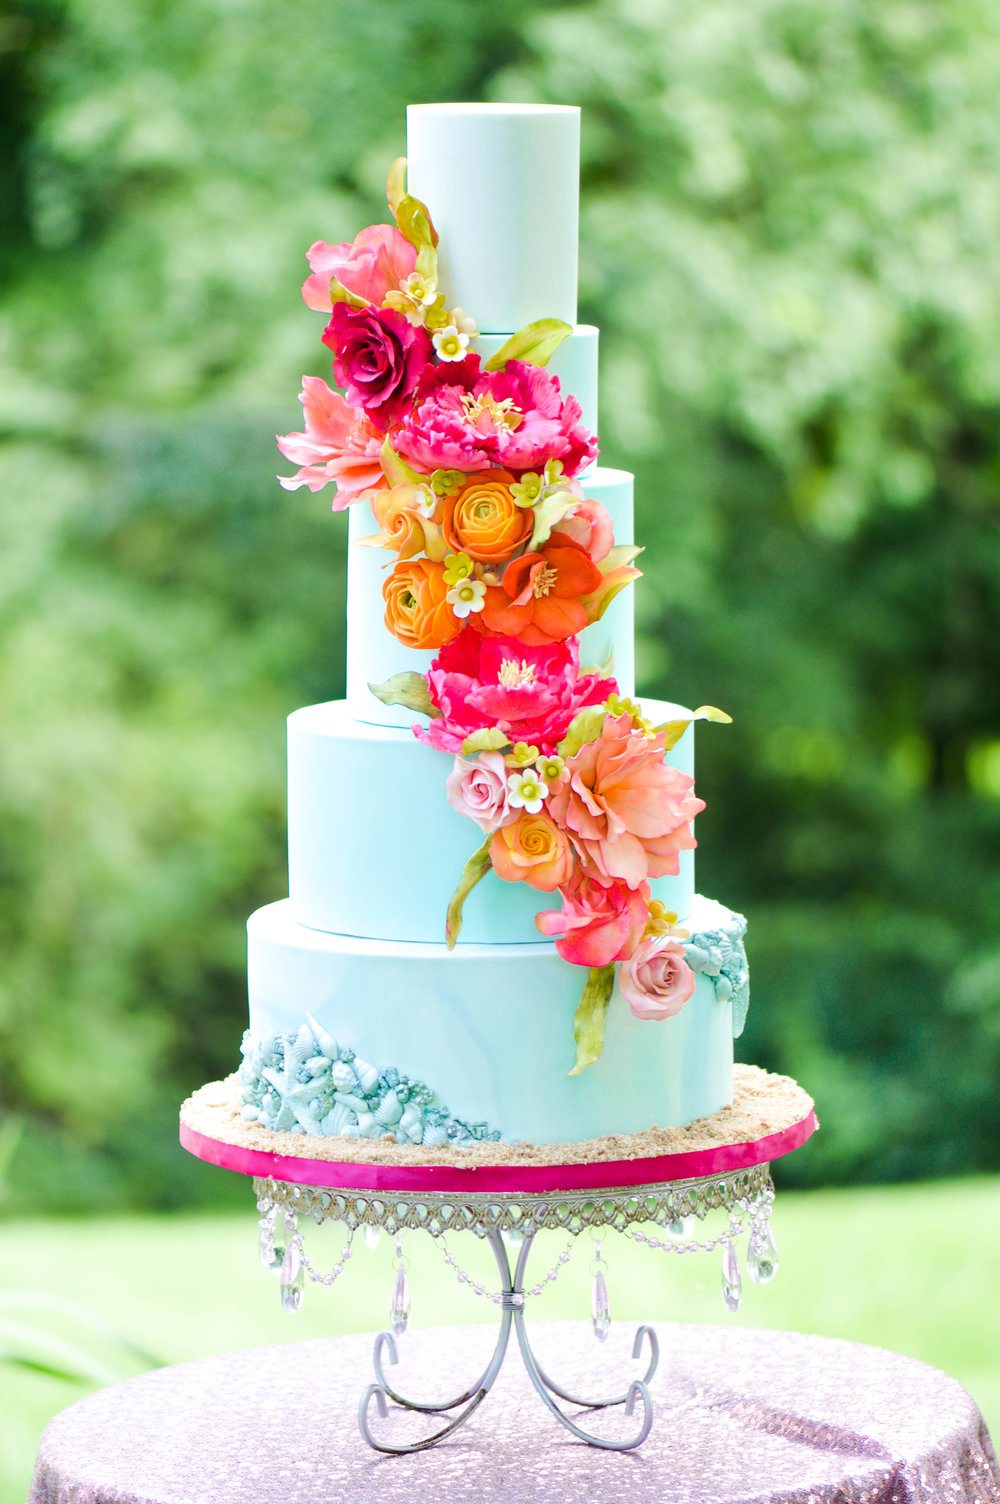 Dazzling Blues - The cake featured an ombre blue color palette and bold colorful blossoms for a tropical feel.